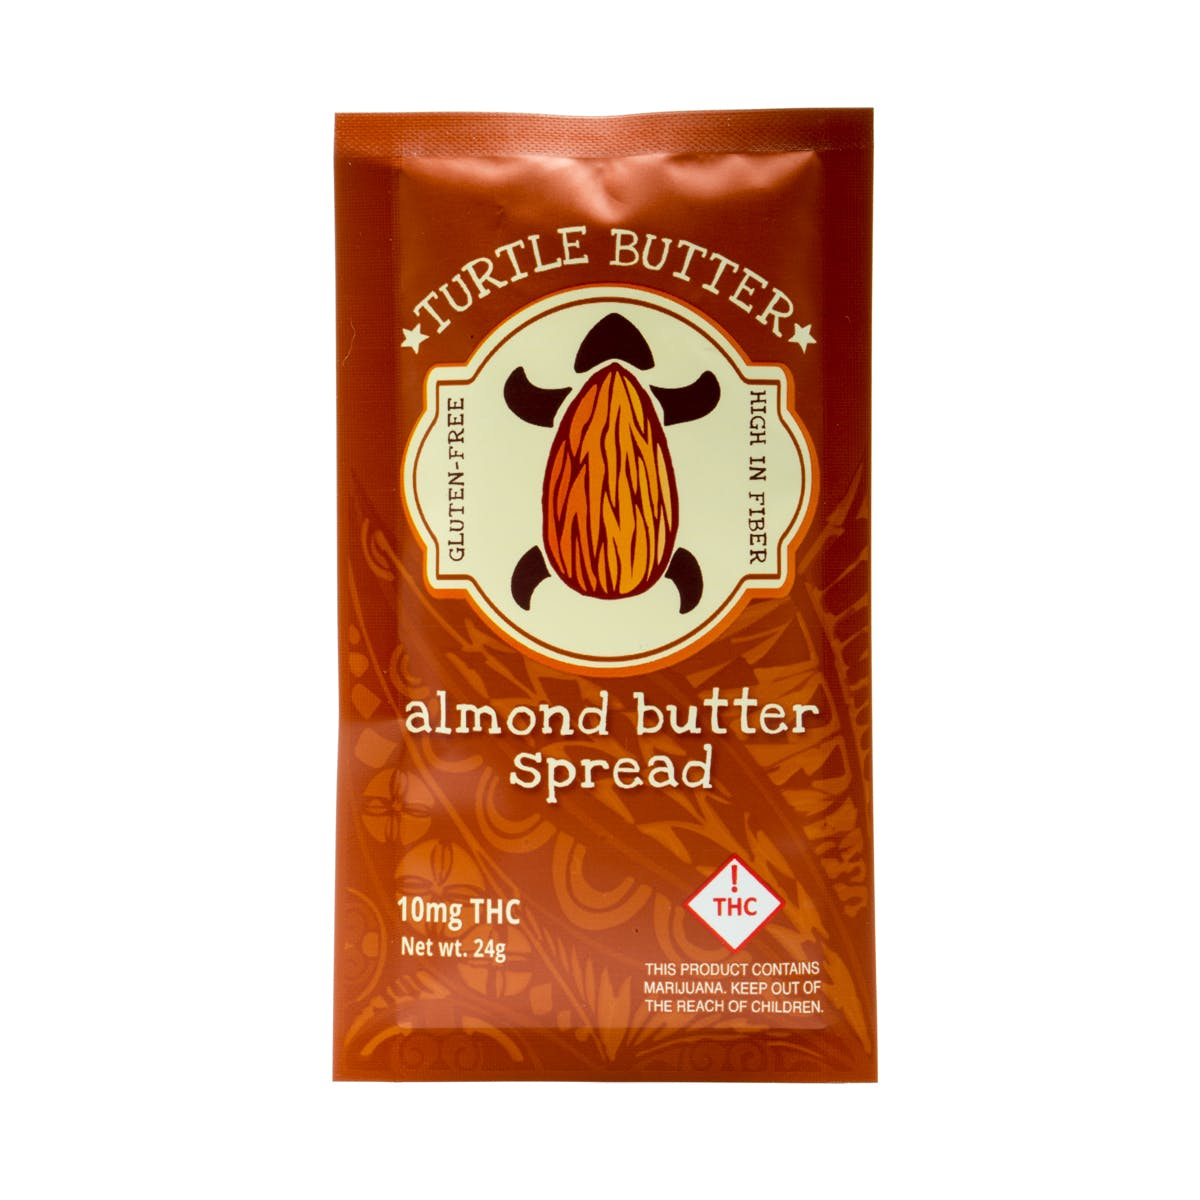 edible-almond-turtle-butter-10mg